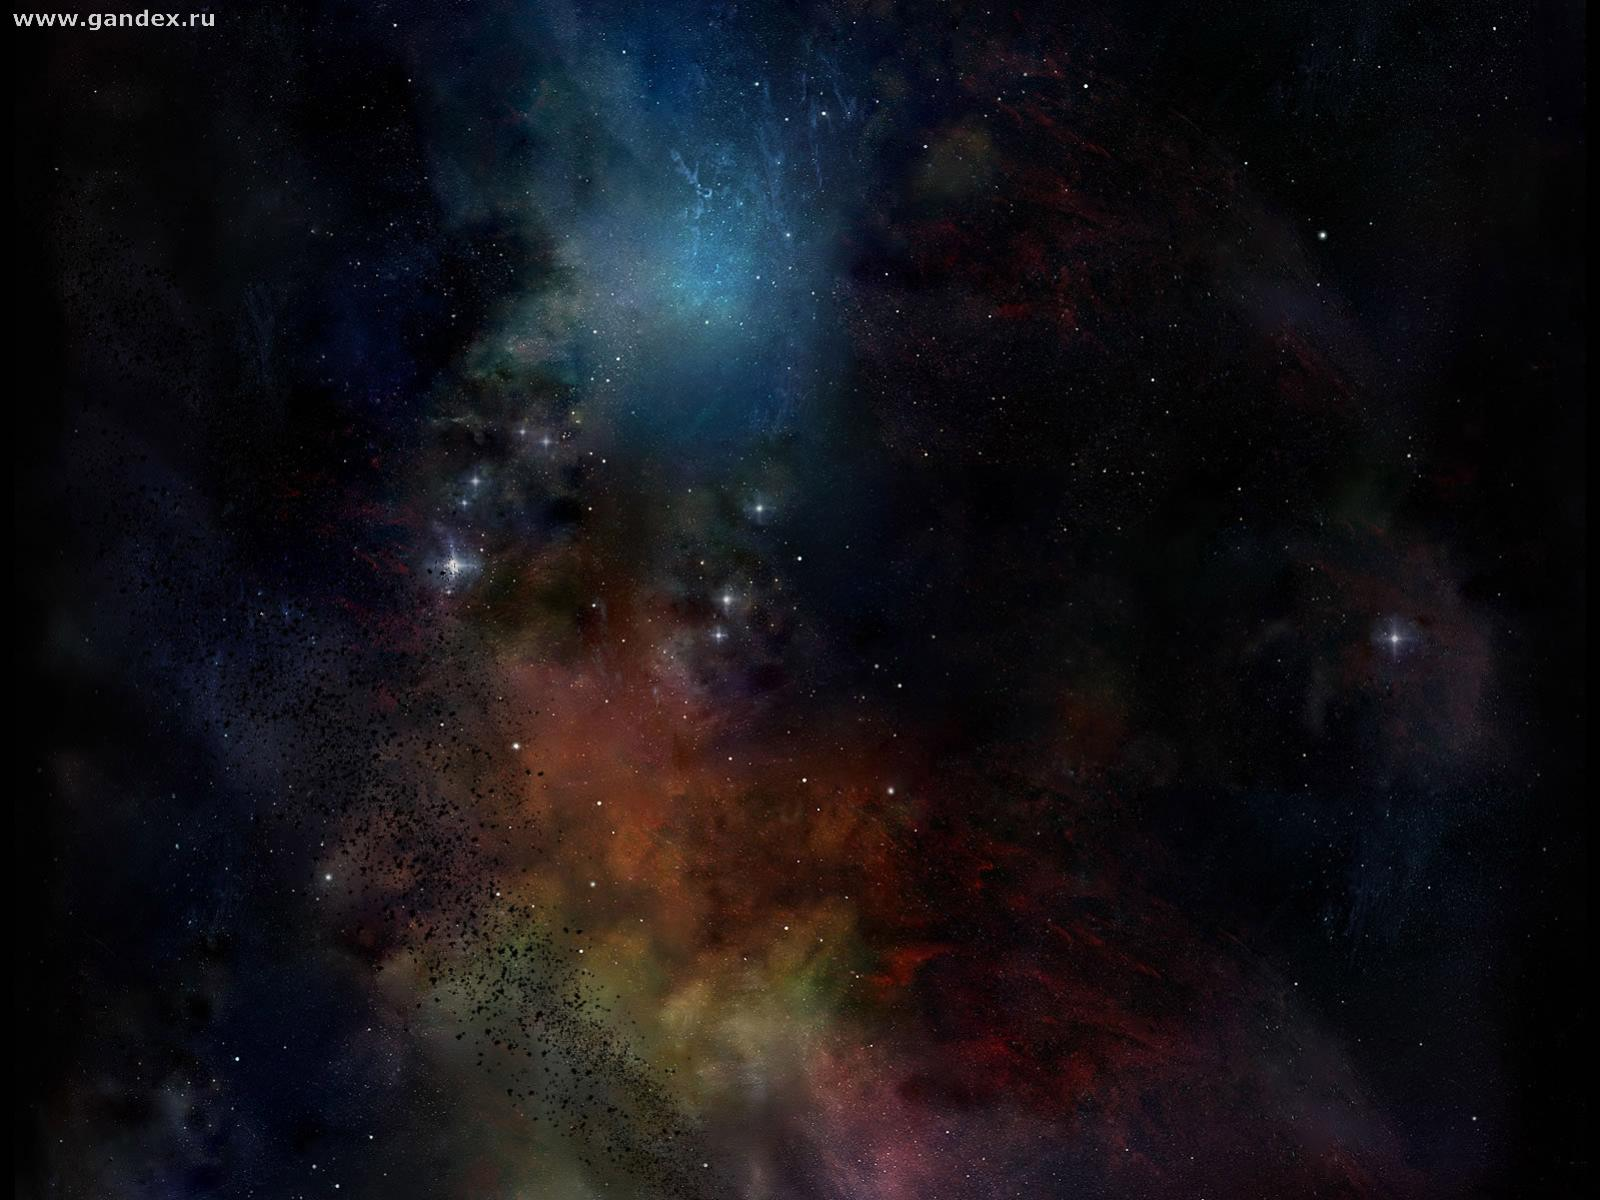 Download Wallpaper Dark space wallpaper   1600x1200 1600x1200